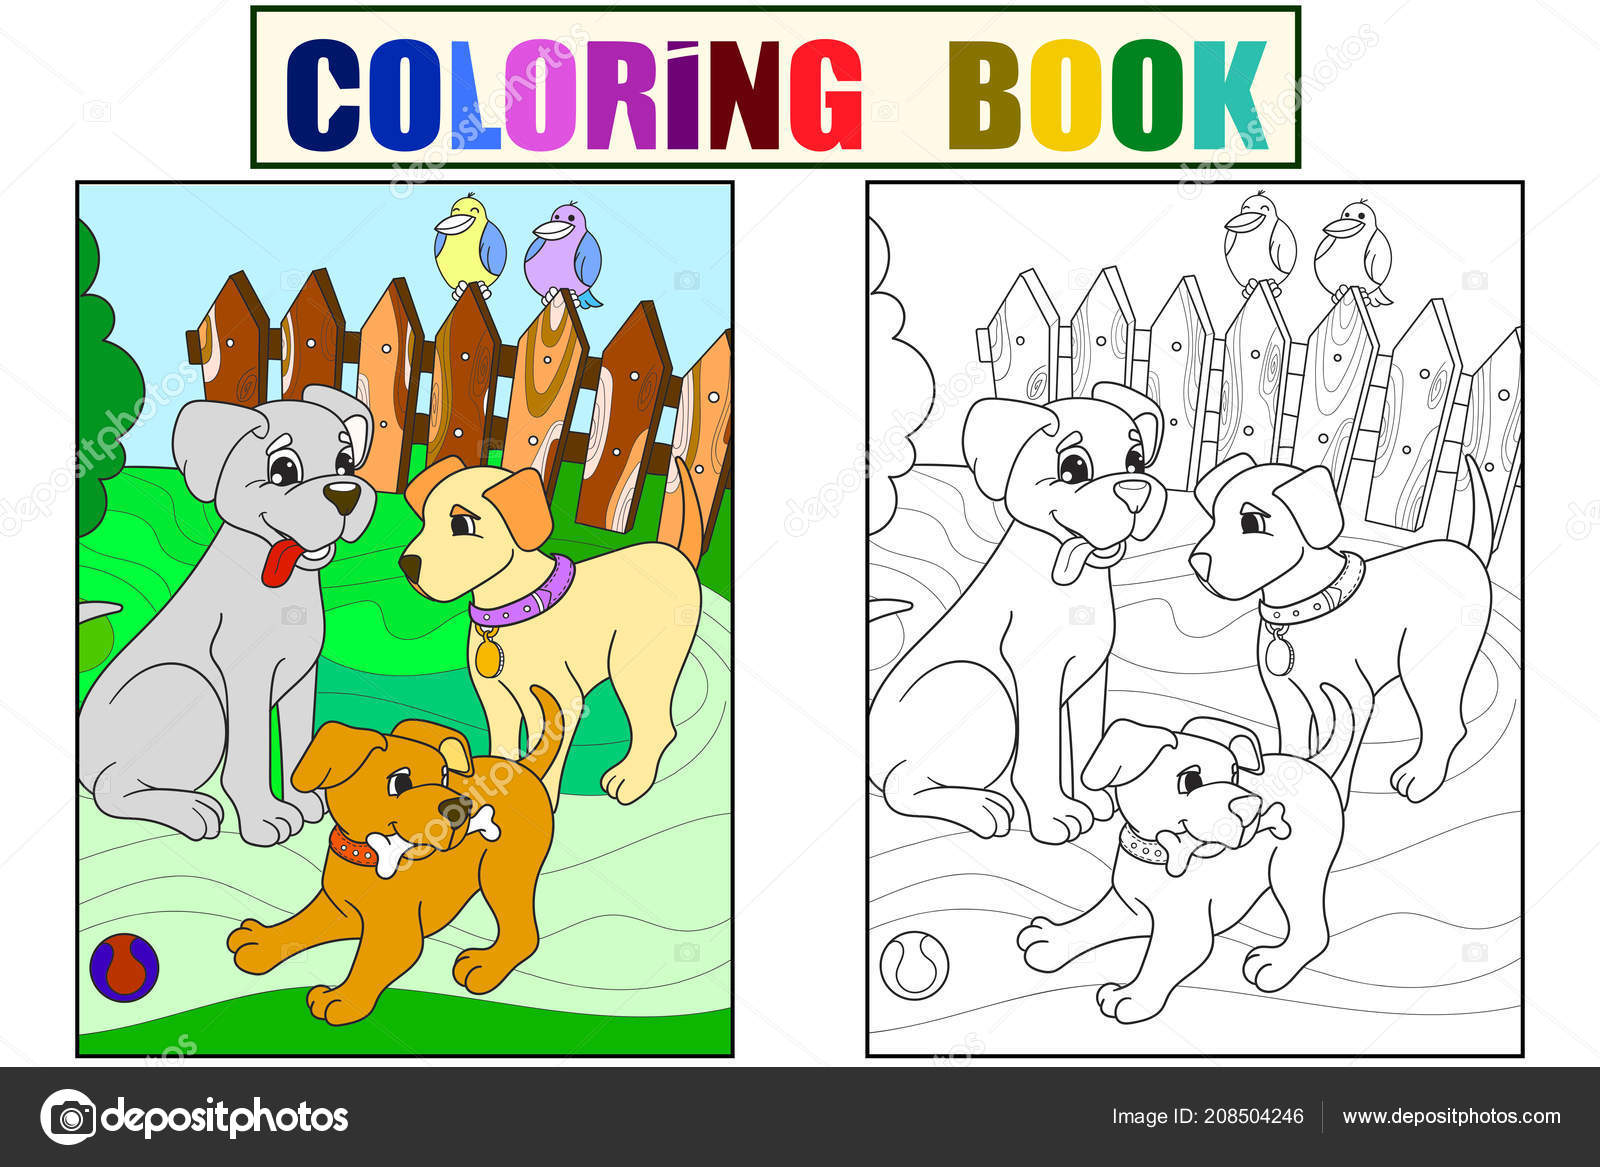 Https Cz Depositphotos Com 208504246 Stock Illustration Childrens Color And Coloring Book Html